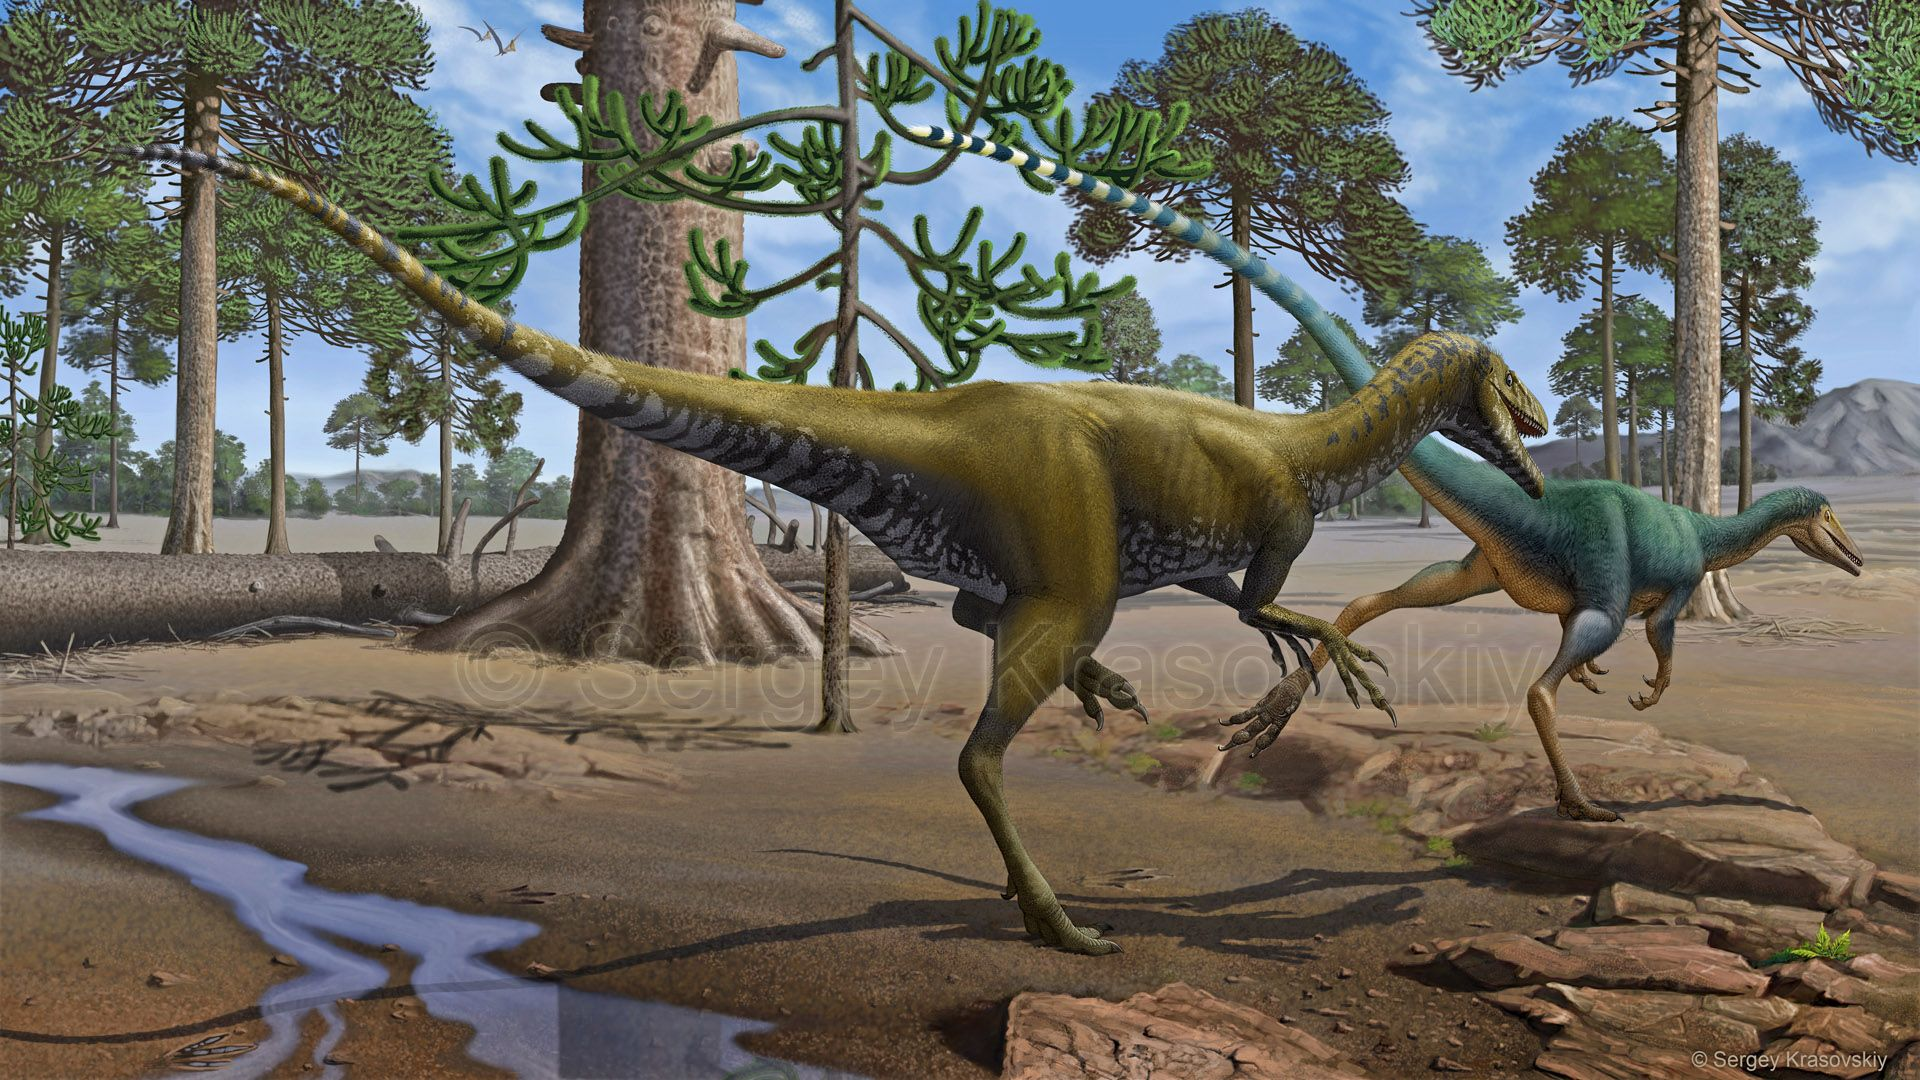 SANTANARAPTOR PLACIDUS PDF DOWNLOAD